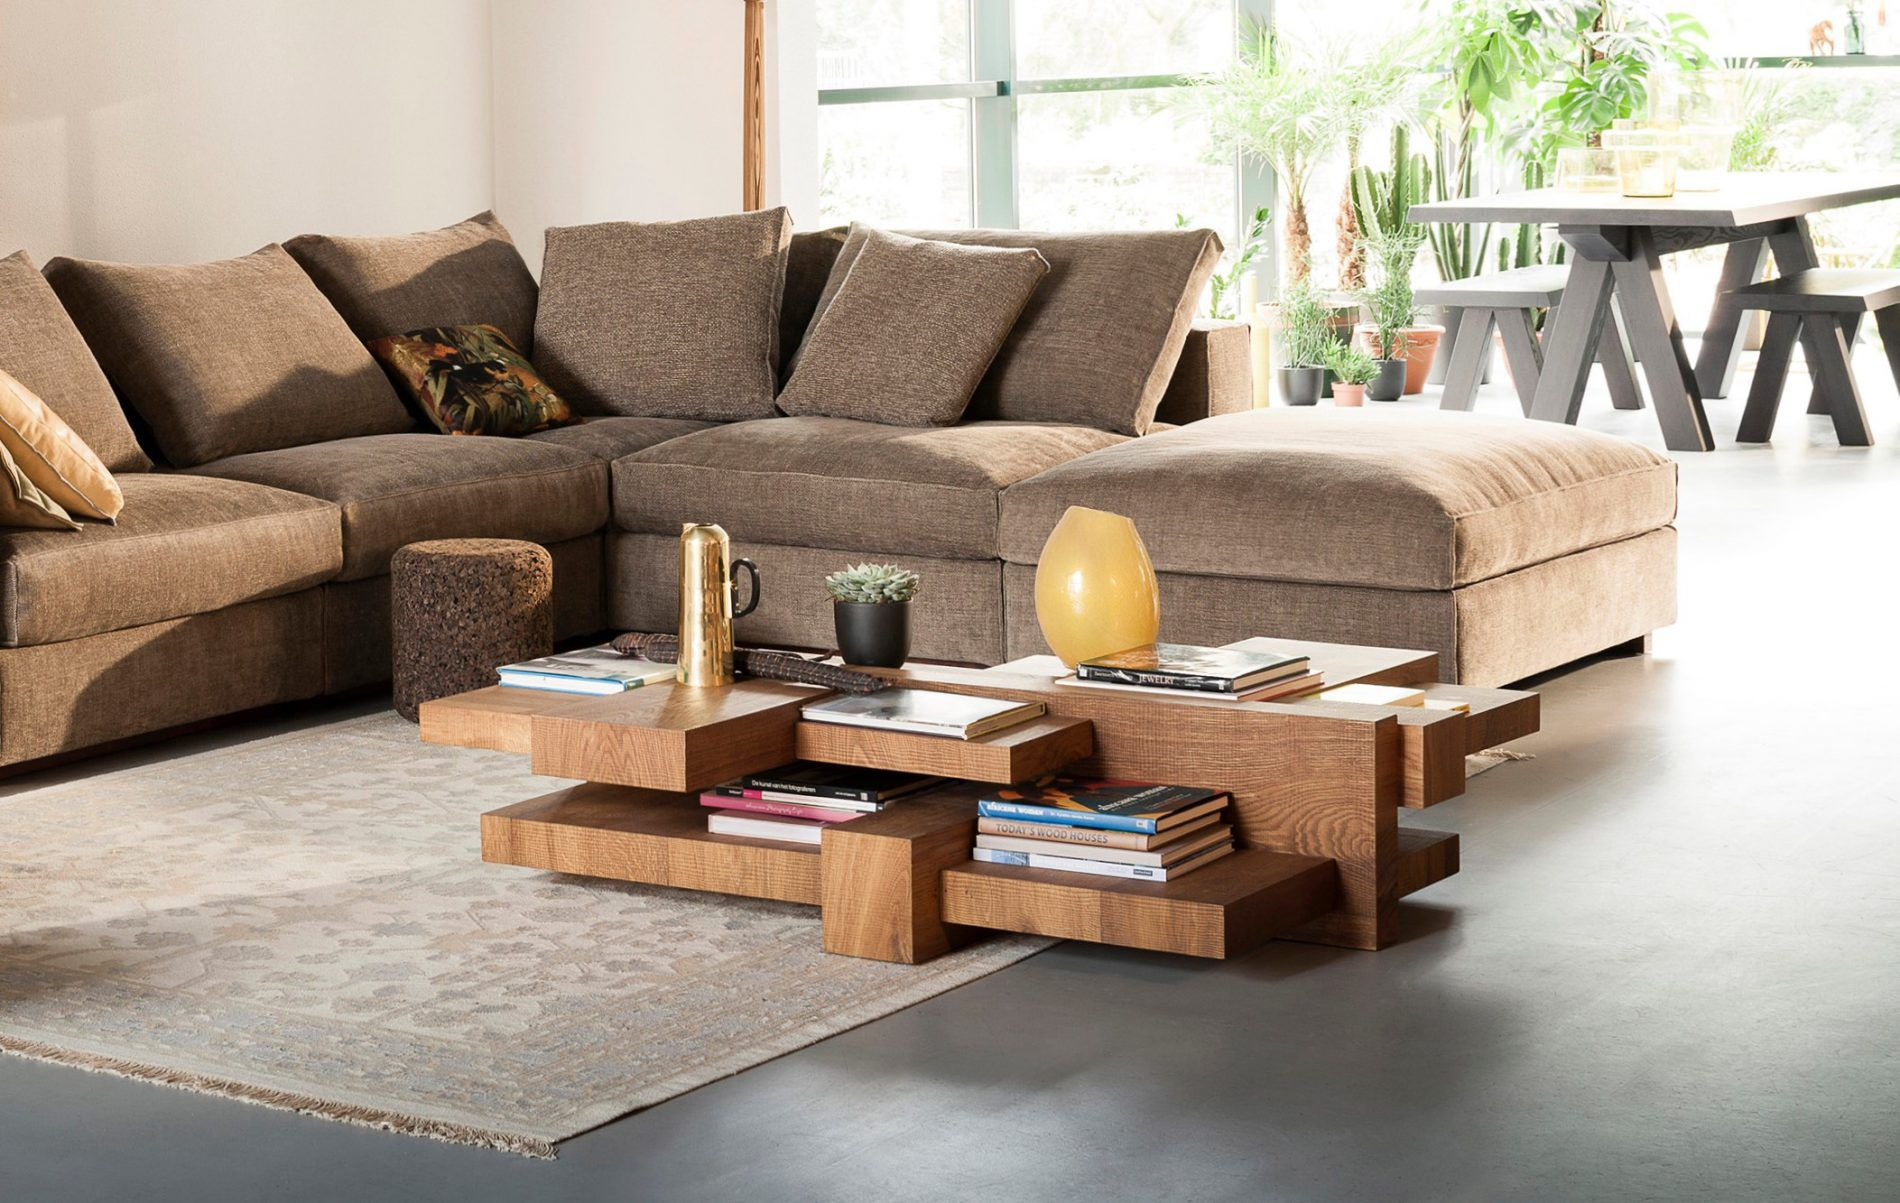 Couchtisch Madison Original Design Coffee Table - Manhattan - Linteloo - Wooden